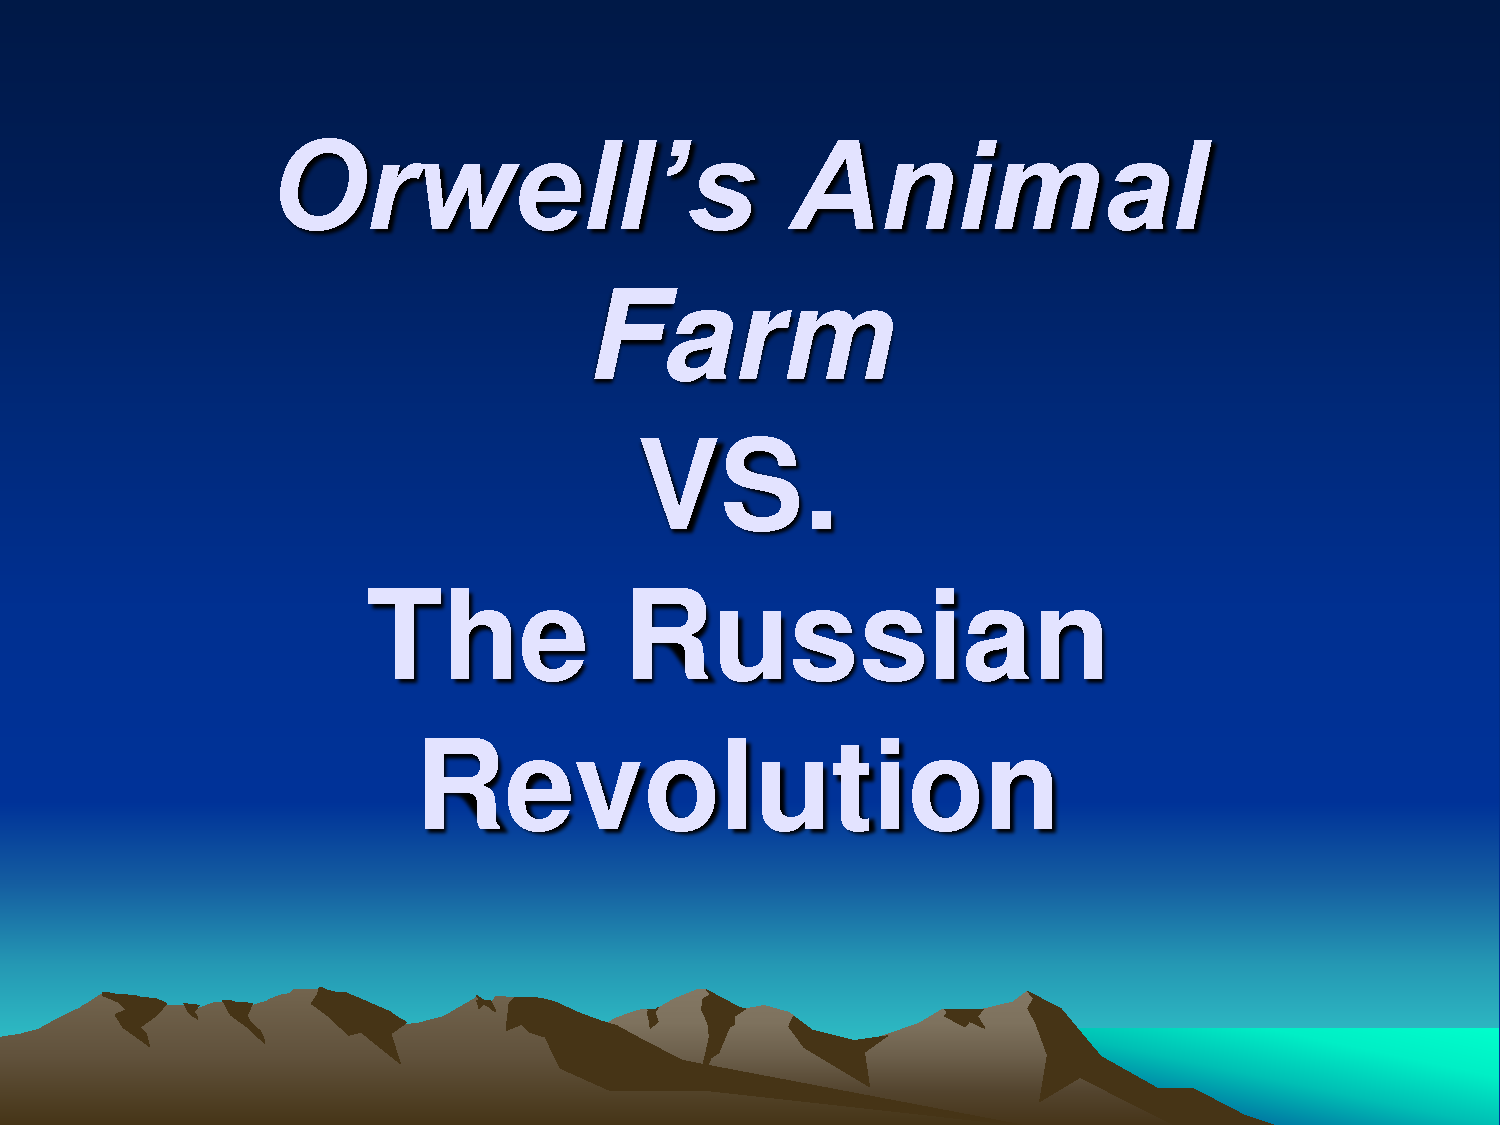 Revolution Quotes Quotesgram: Quotes About The Russian Revolution. QuotesGram